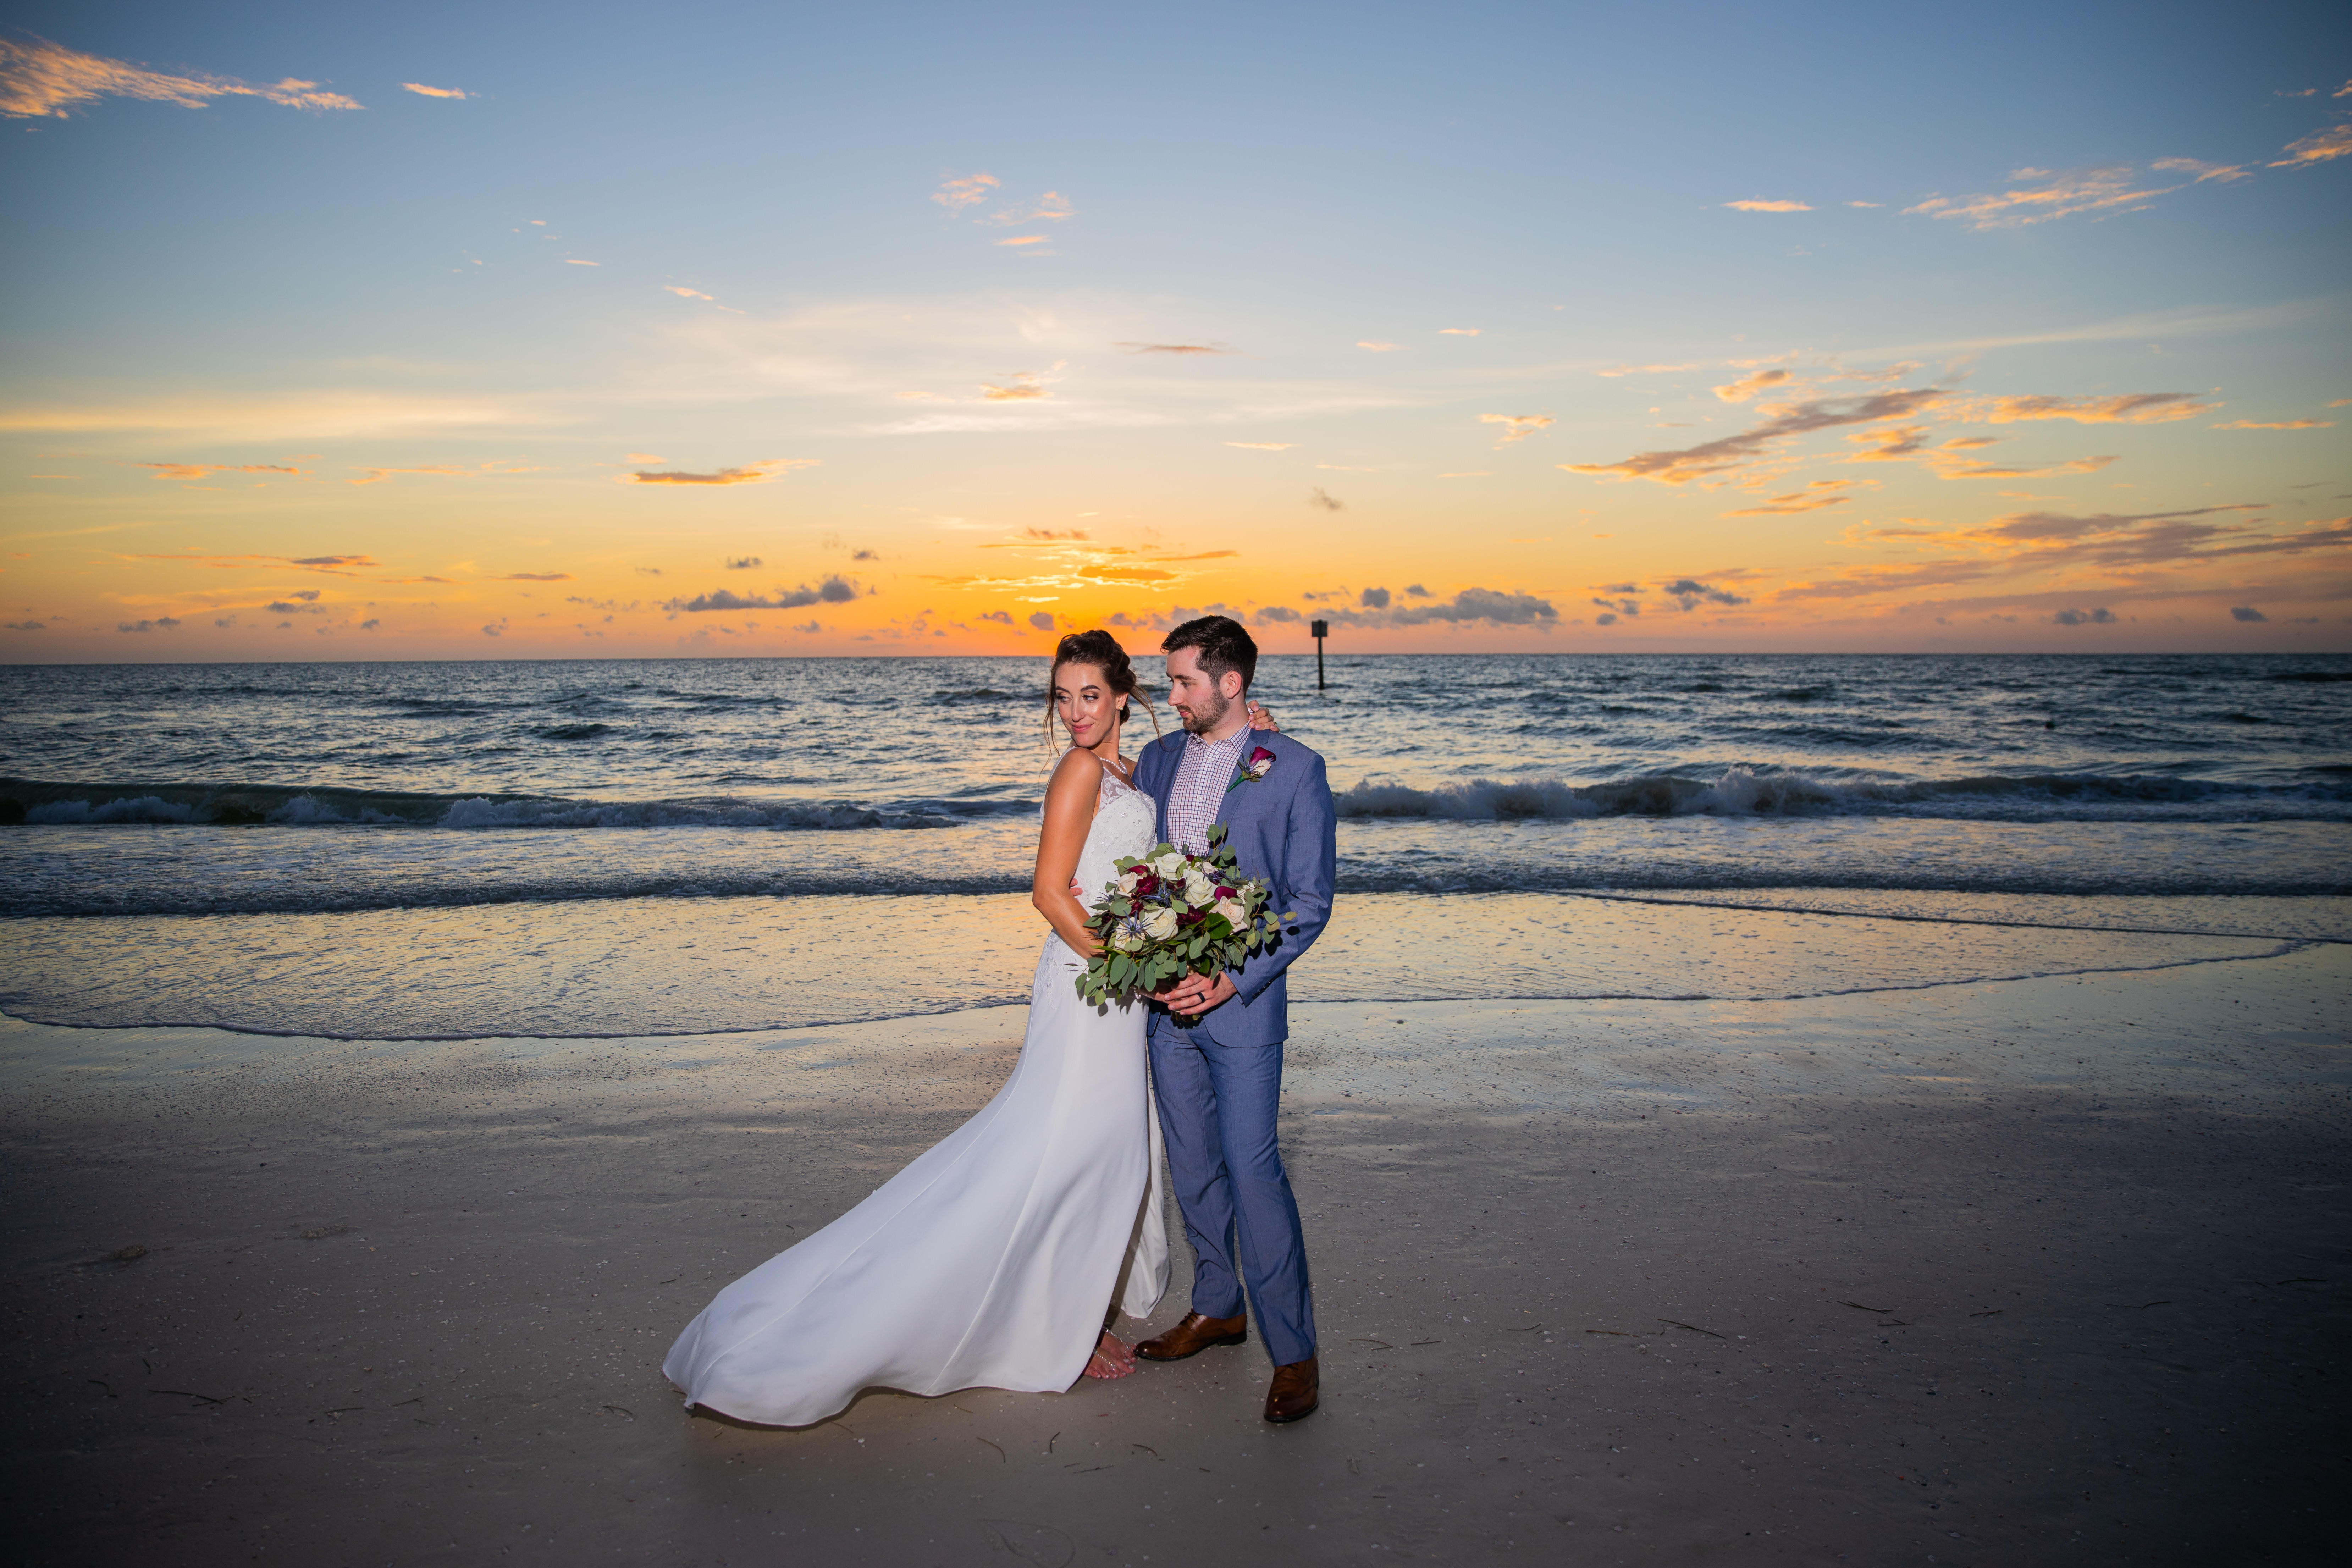 Hilton clearwater beach wedding photography sunset wedding photos beach wedding ideas